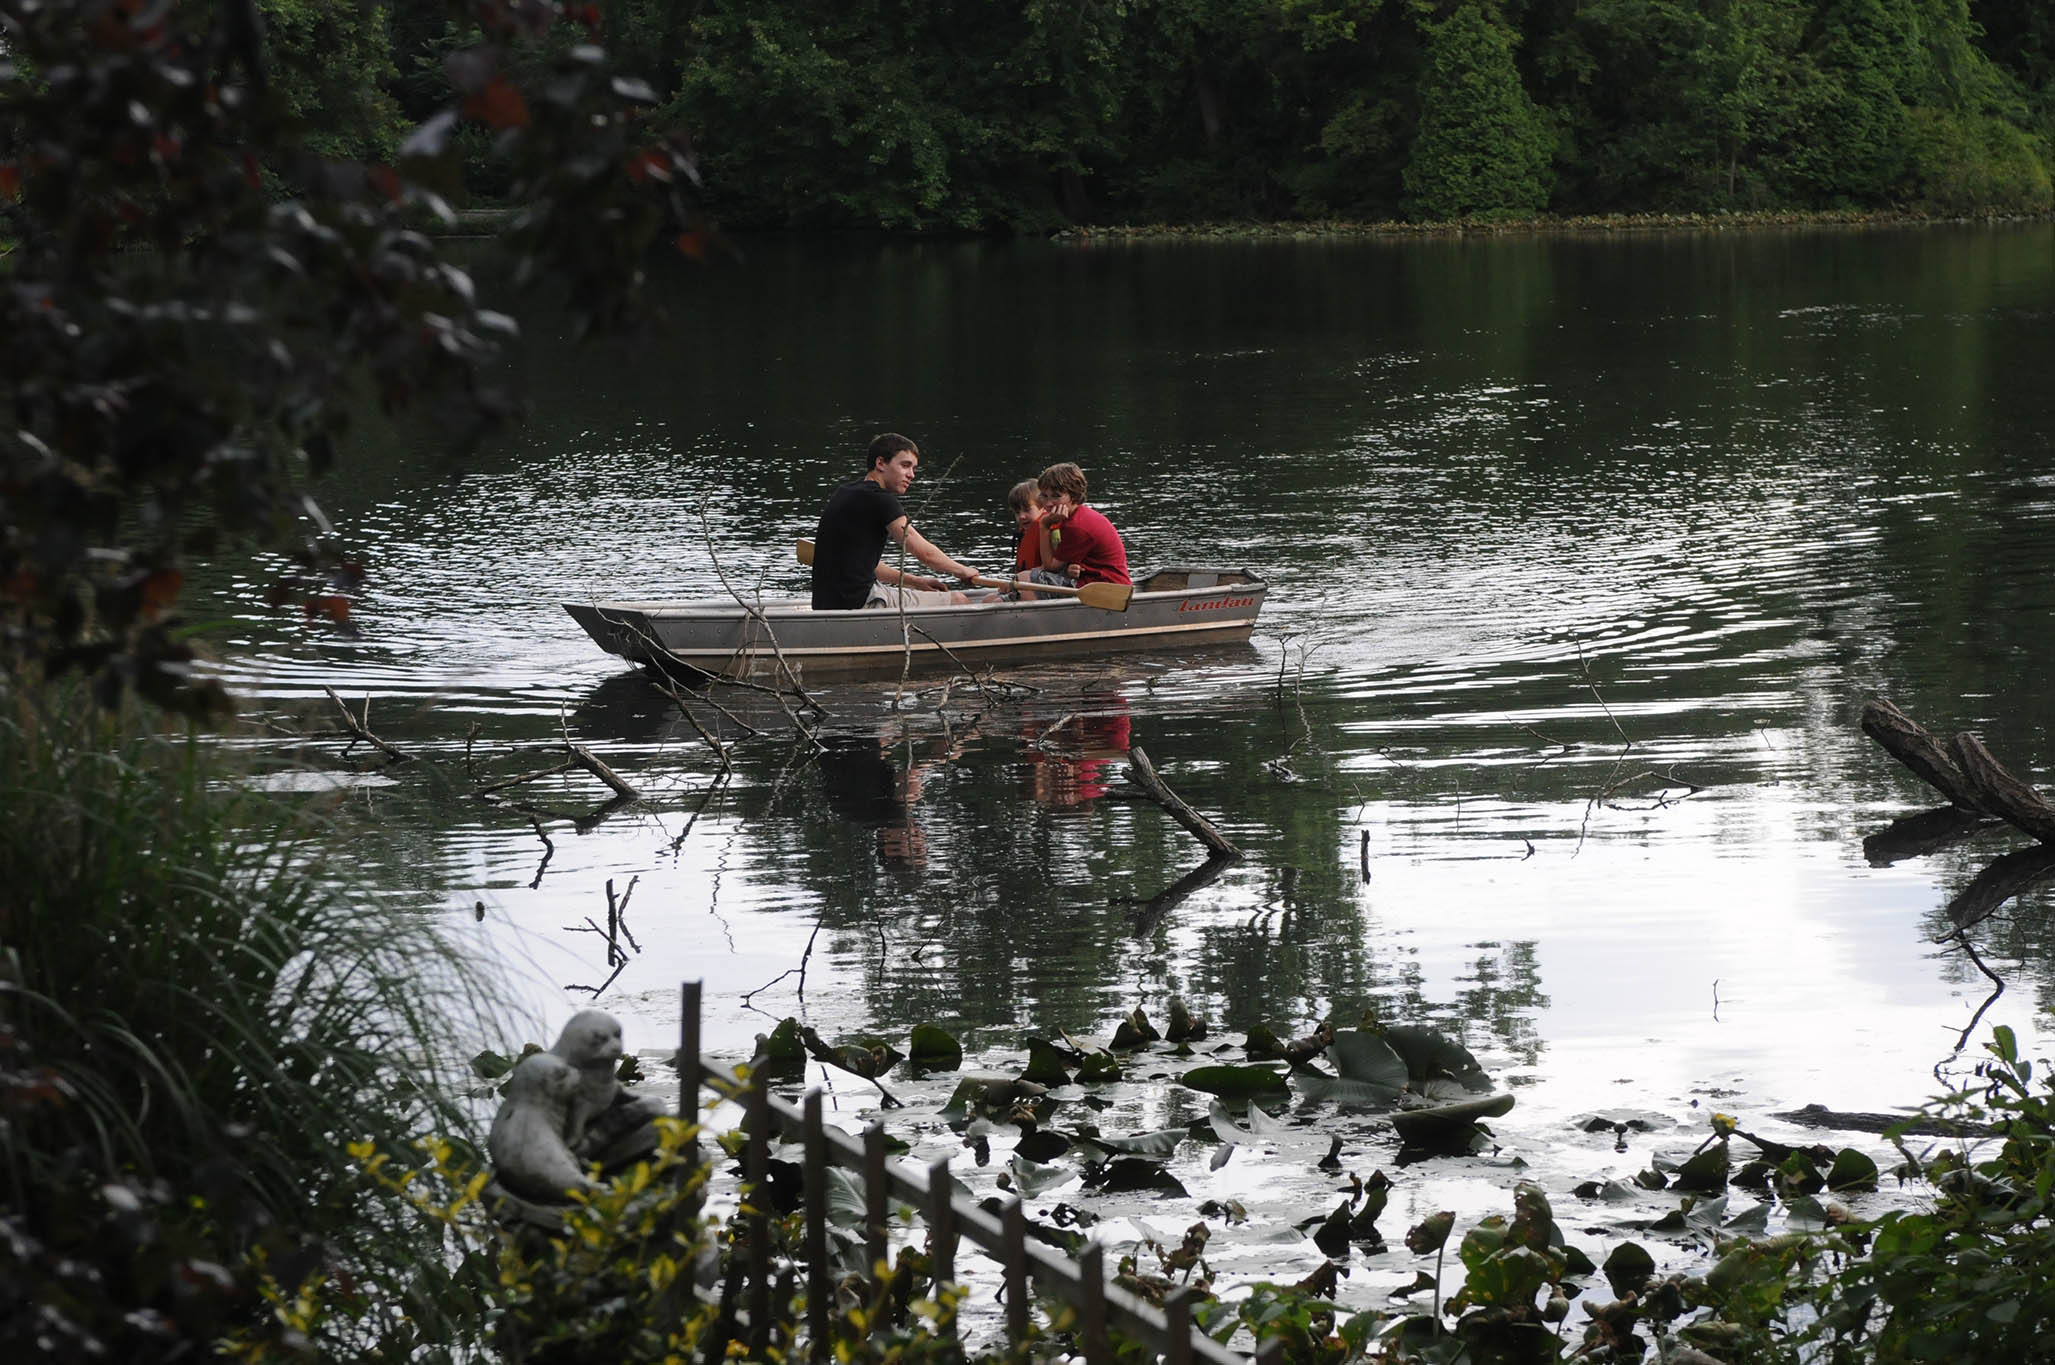 Three young boys in a rowboat on a small pond surrounded by trees and foliage.